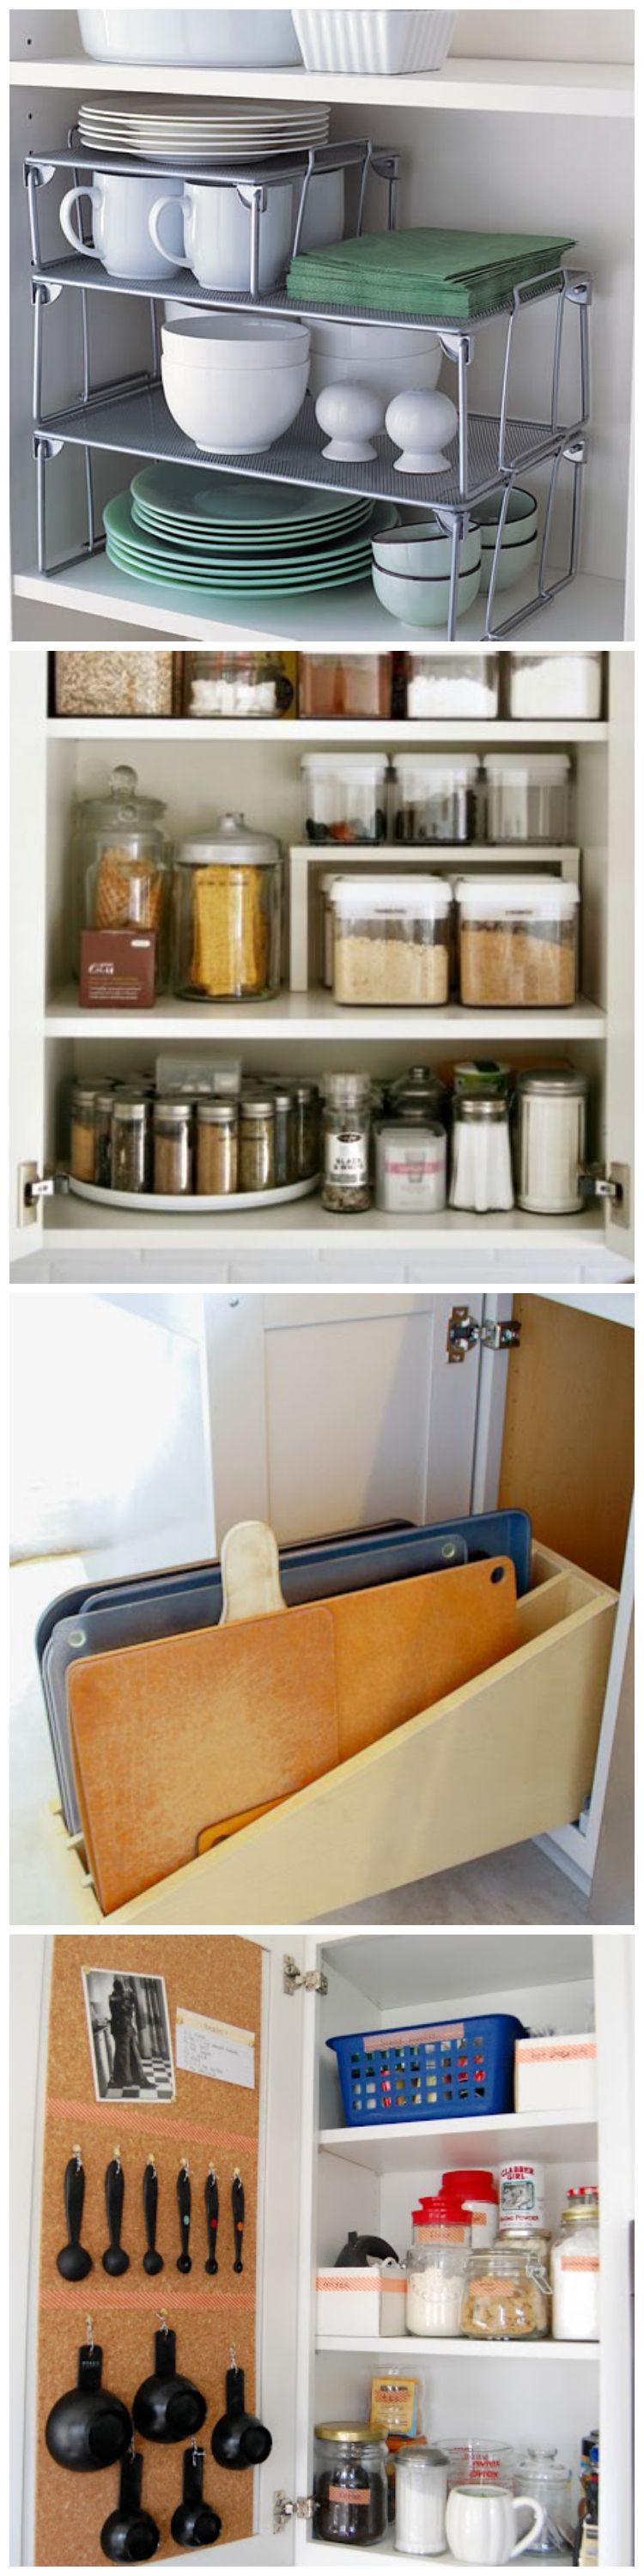 These Insanely Organized Cabinets Will Inspire You To Tidy Up Kitchen Hacks Organization Home Kitchens Kitchen Design